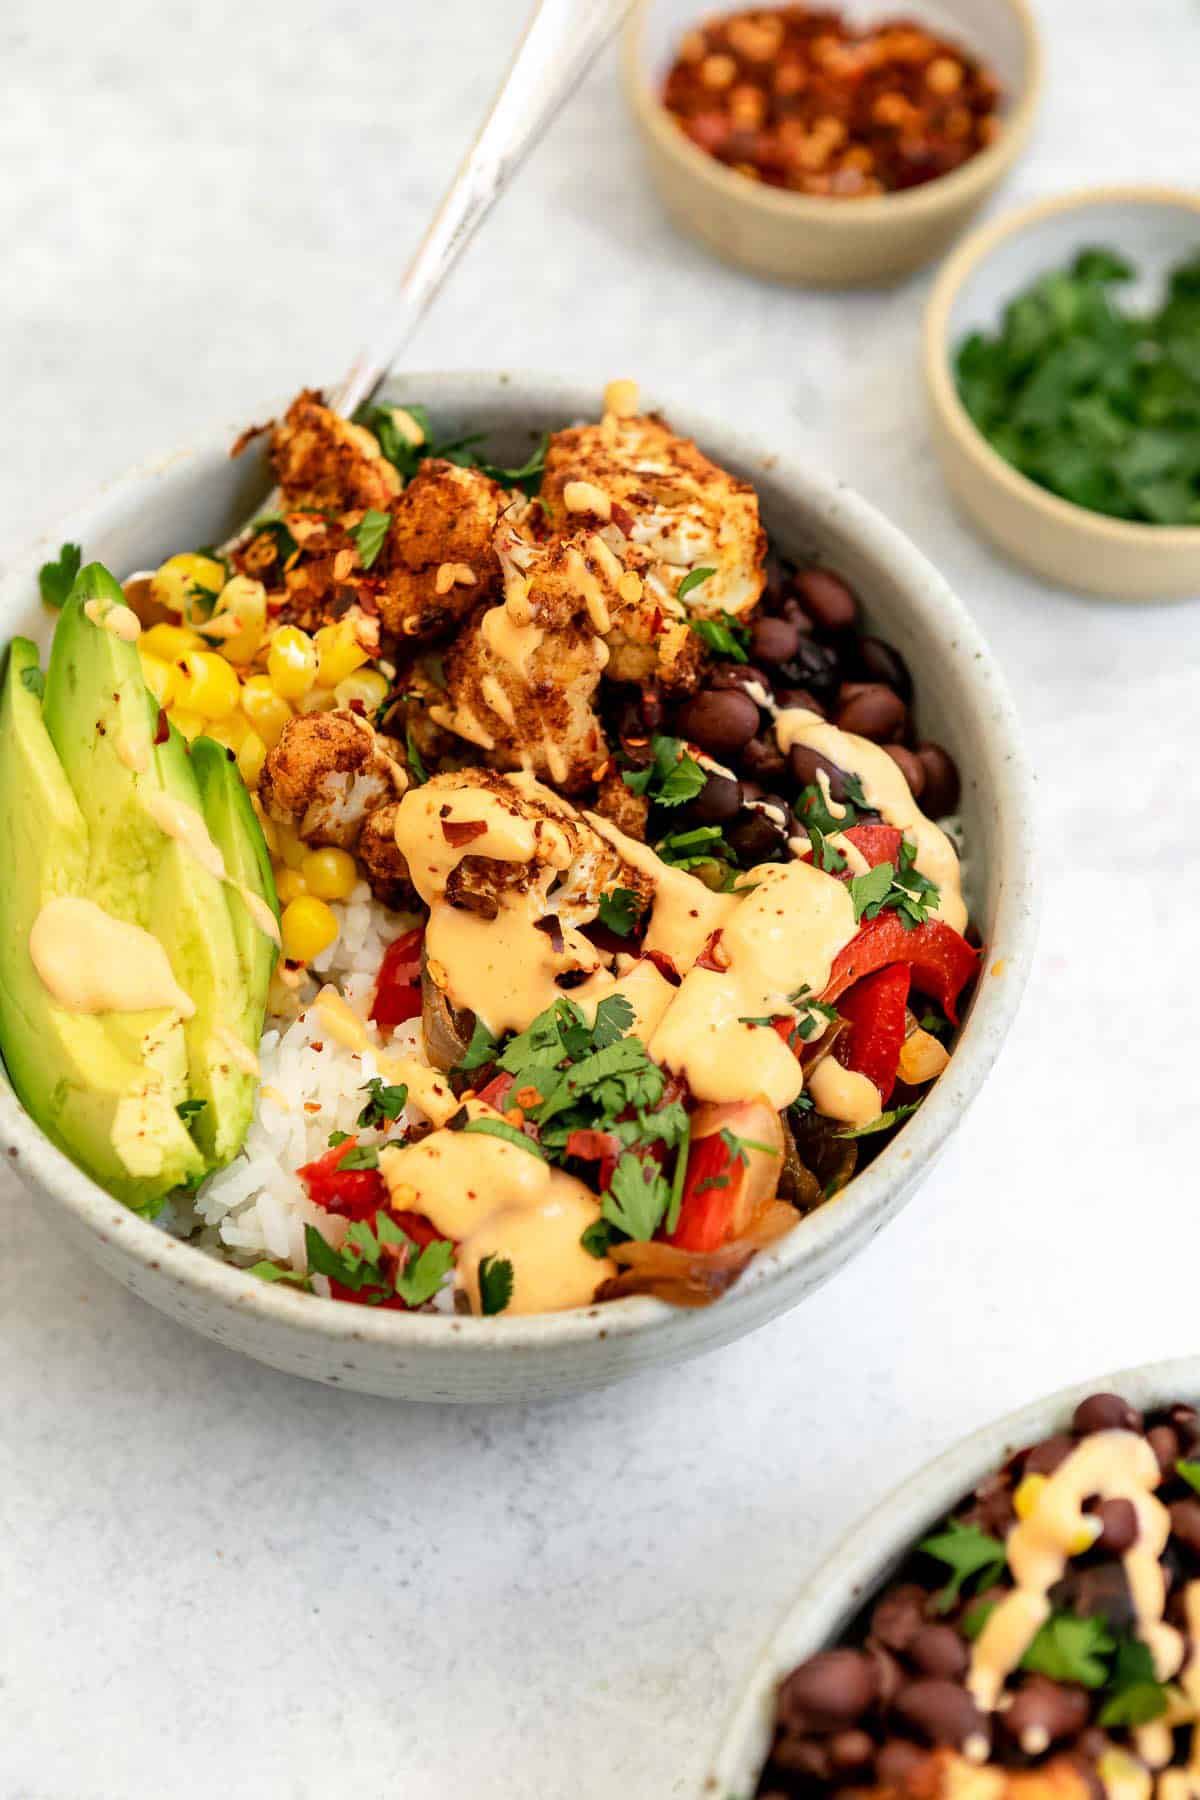 angled view of the vegan burrito bowl with bell peppers and roasted cauliflower